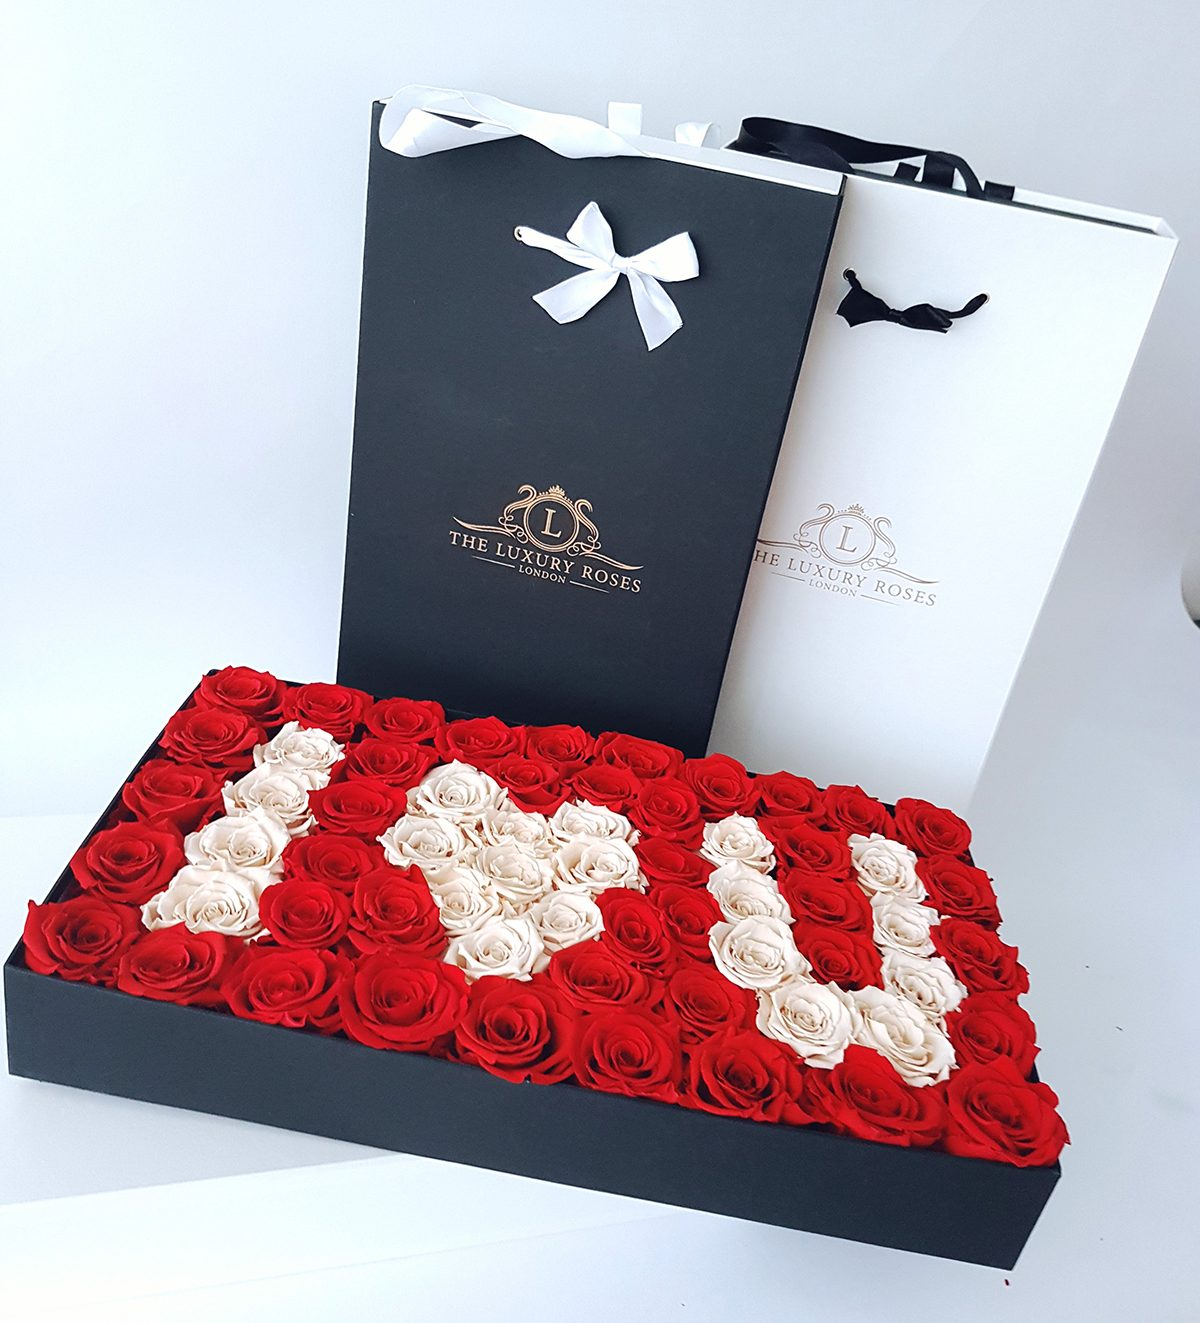 a50e643f1770d9 I love you boxed infinity roses that last a year-The Luxury Roses of ...